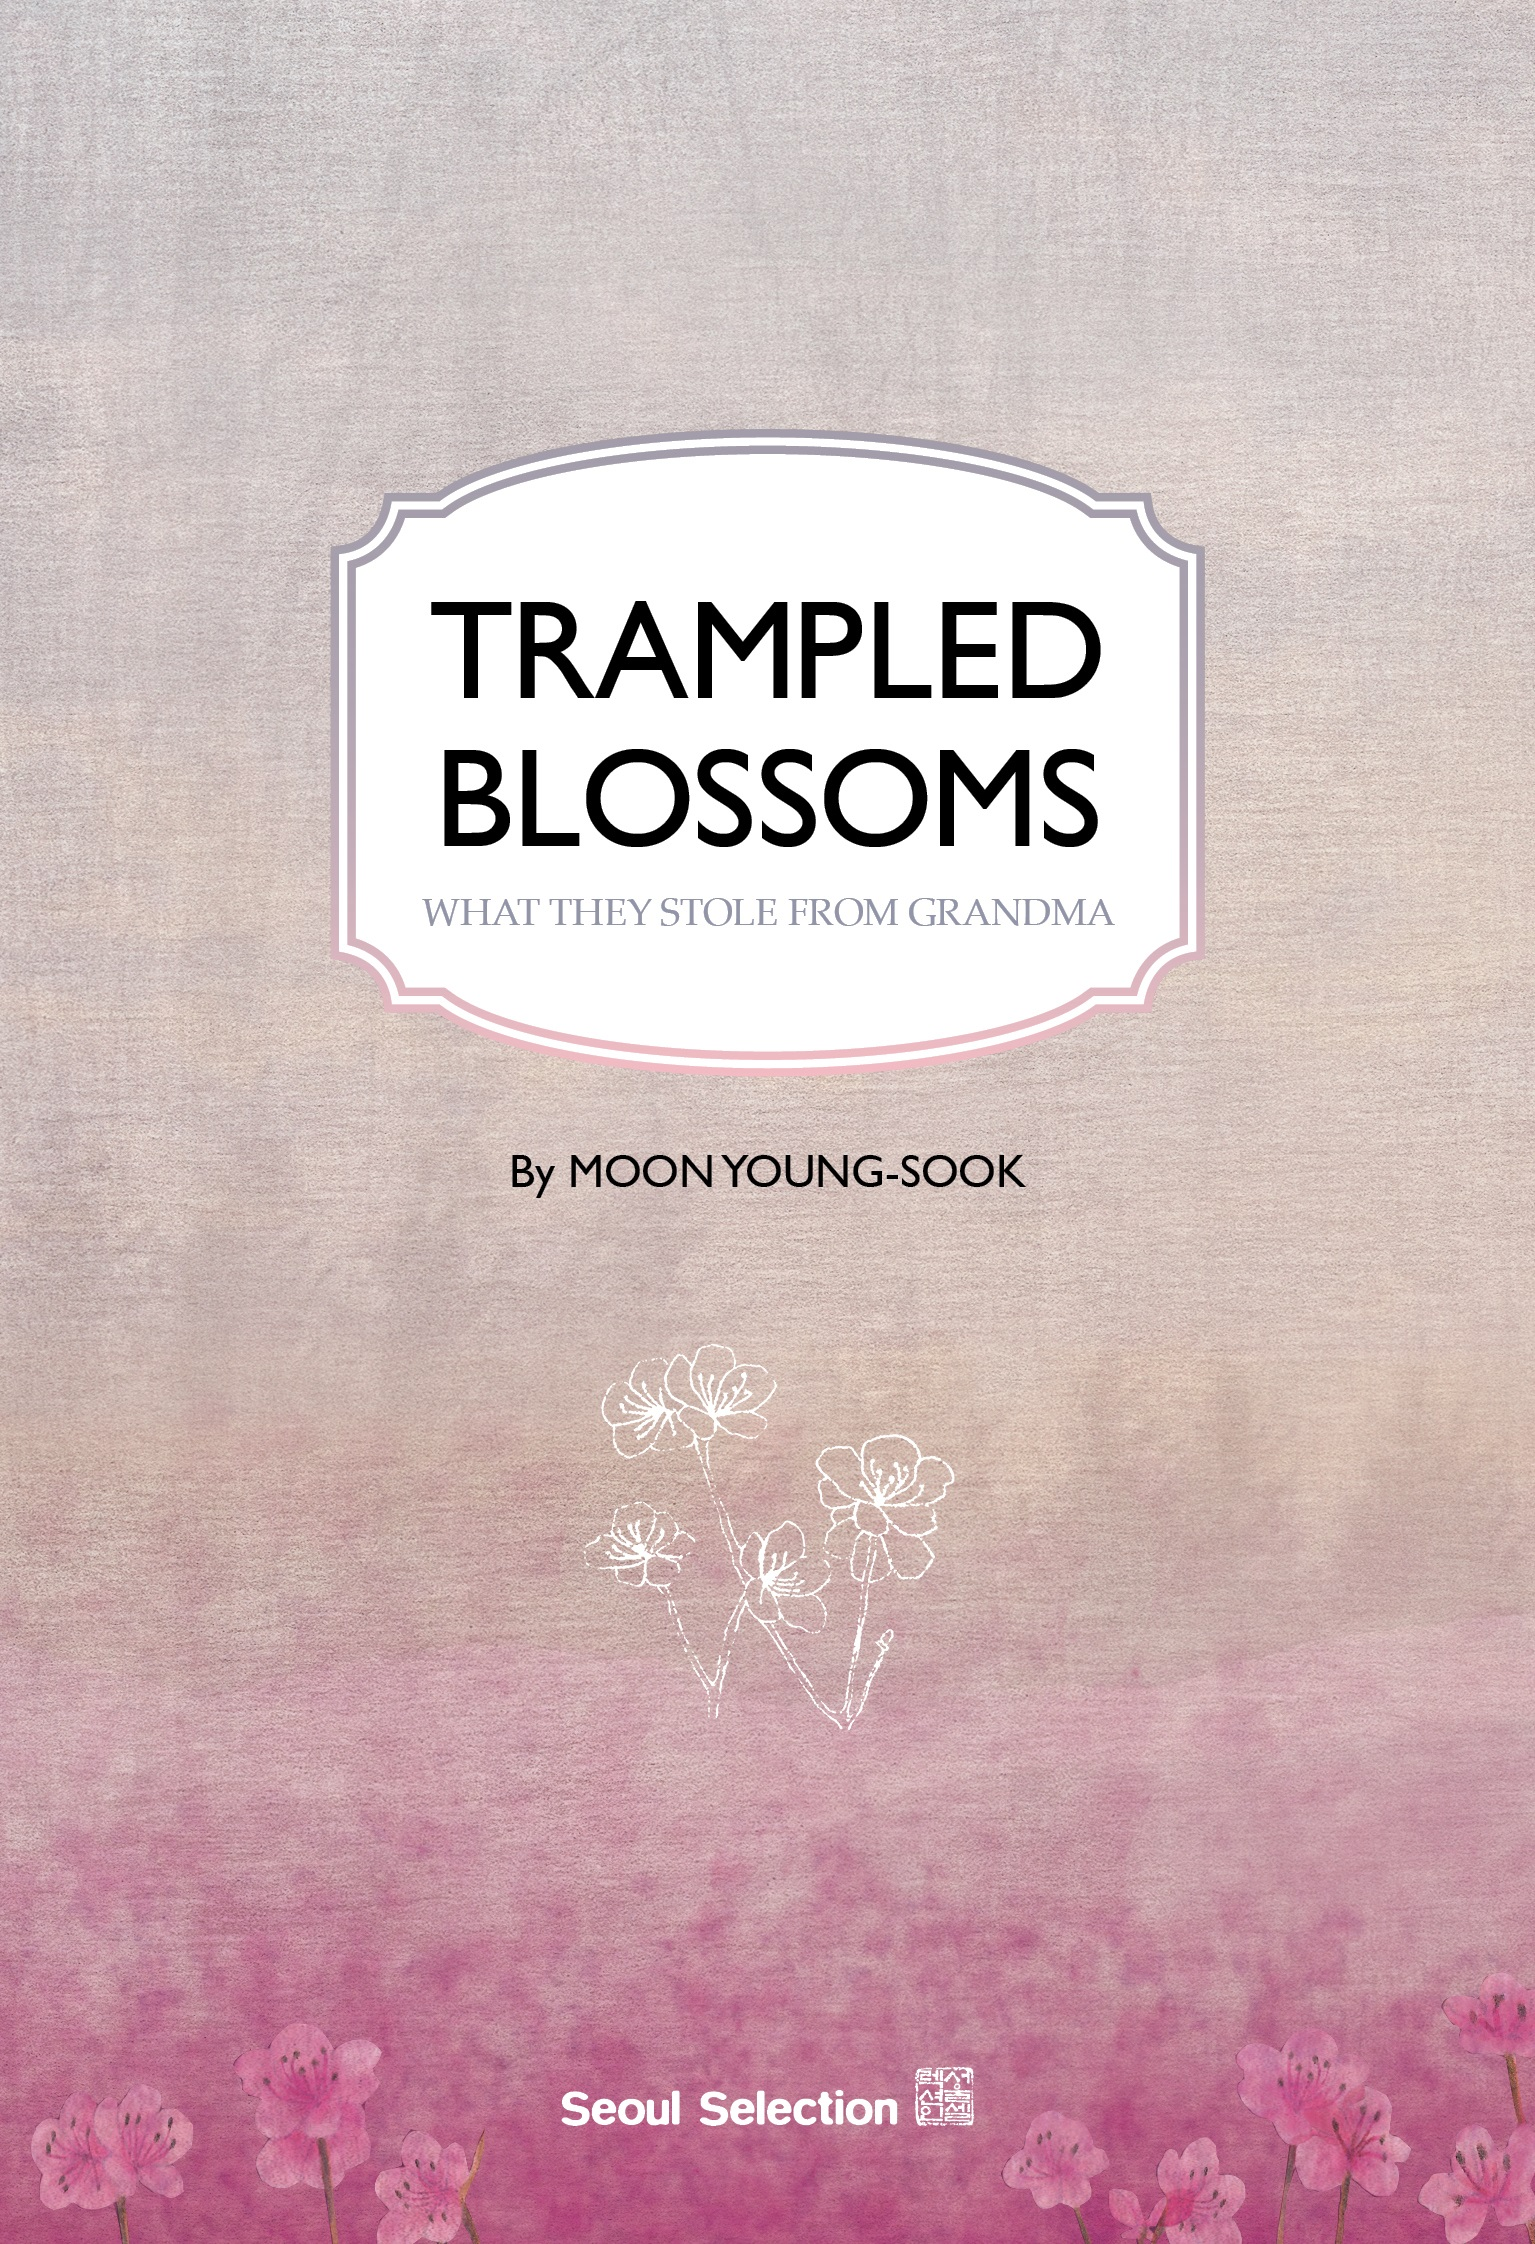 Trampled Blossoms: What They Stole from Grandma